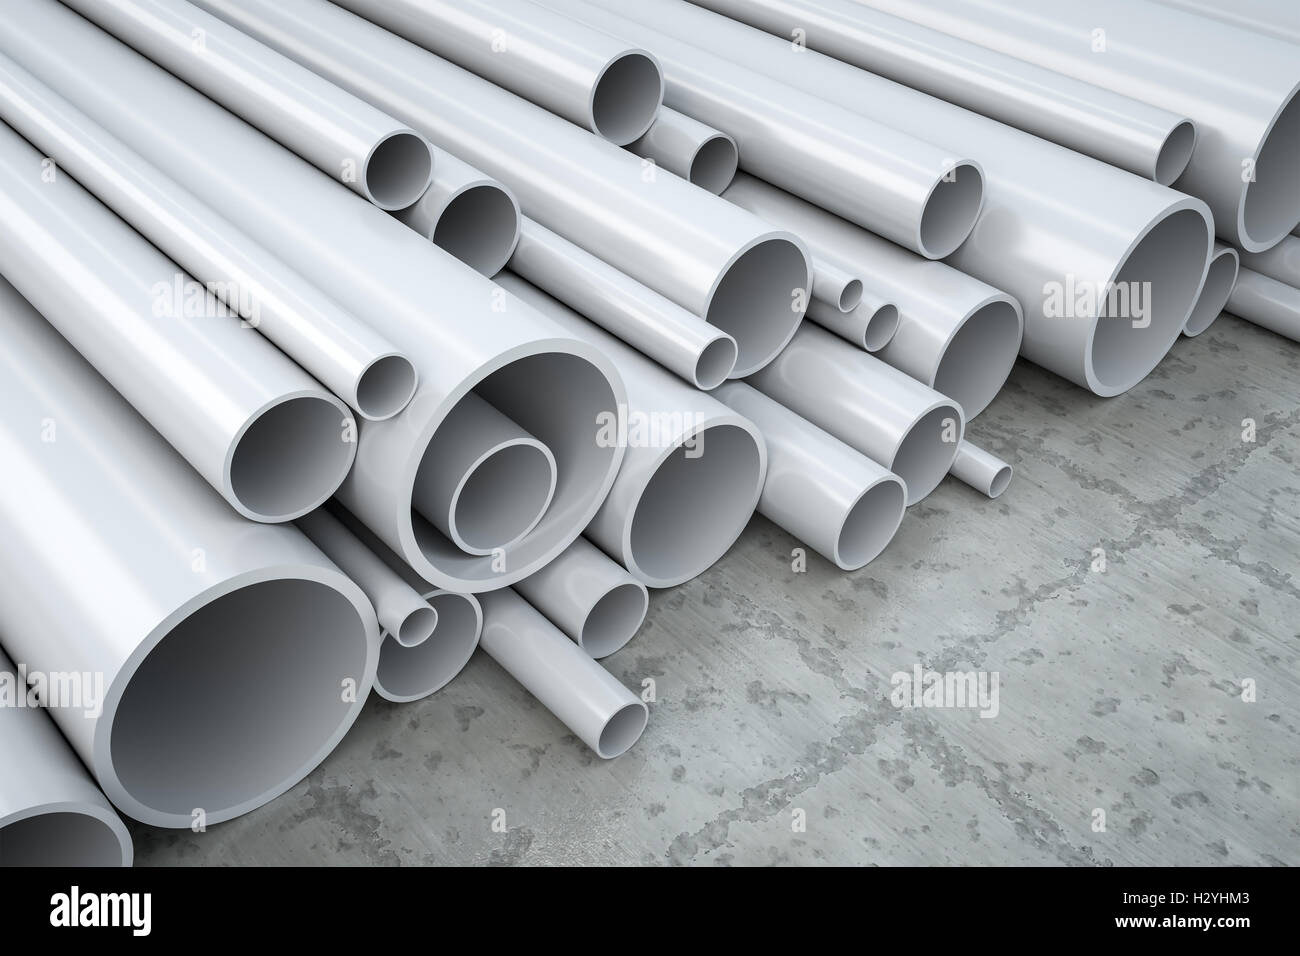 plastic pipes - Stock Image